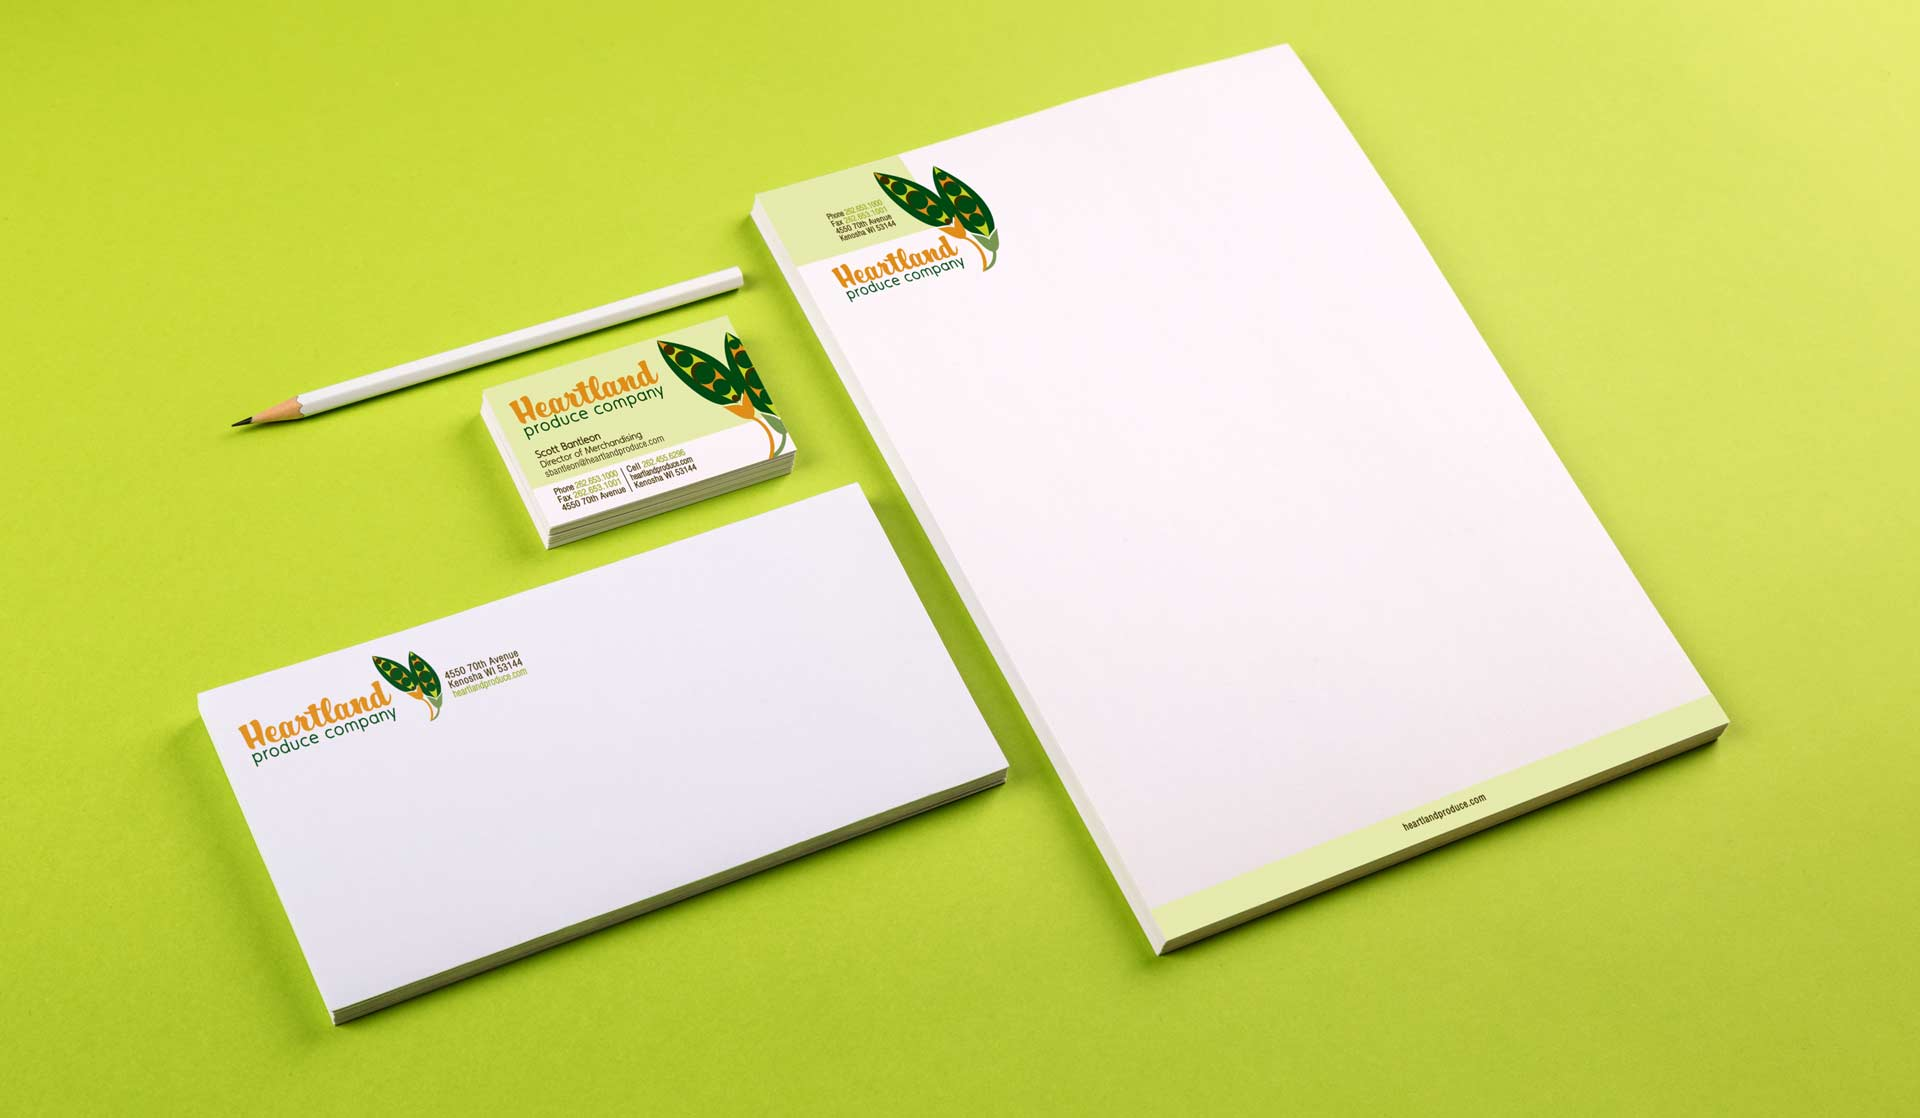 Heartland Produce partners with brand development agency, NAVEO, to produce a new logo and memo pads for trade shows.